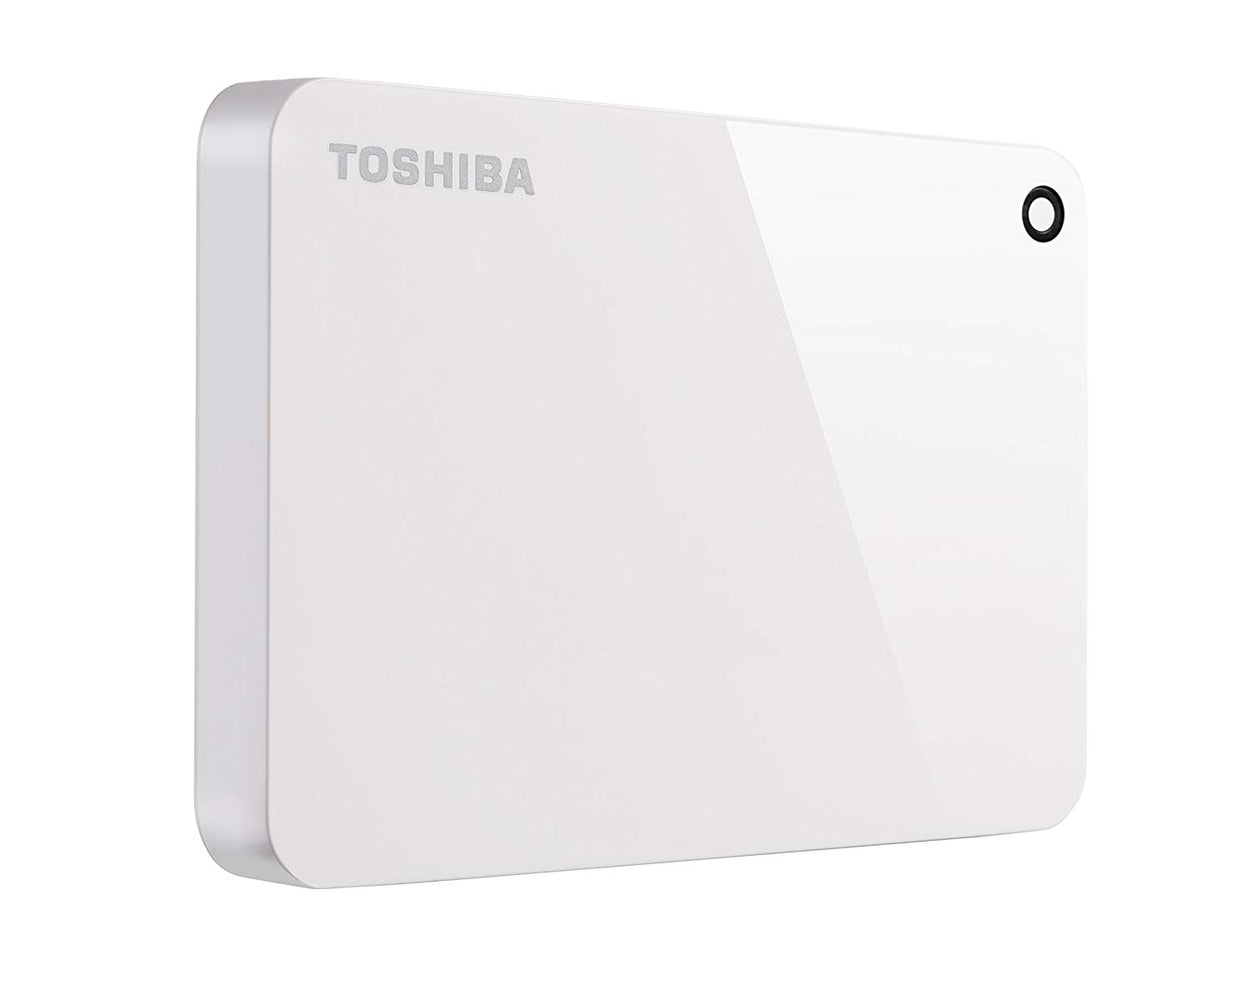 Toshiba HDTC920EW3AA 2TB Canvio Advance 2.5-Inch USB 3.0 Portable External Hard Drive - White